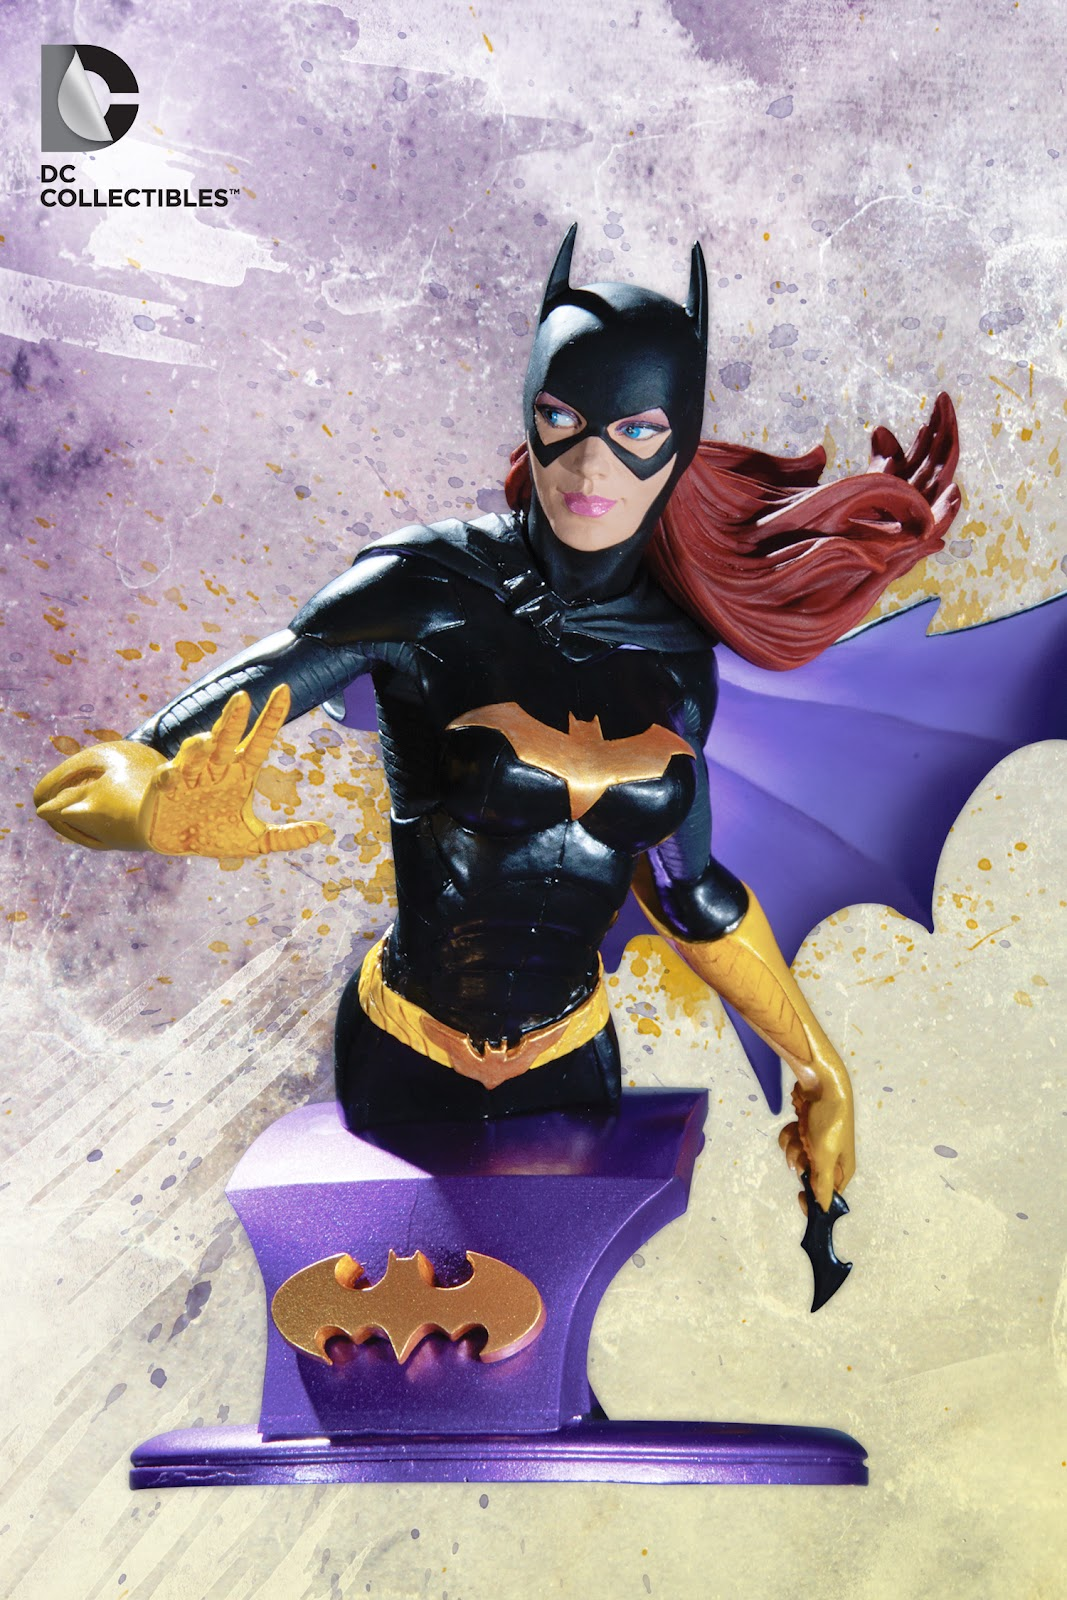 Batgirl Defeated Batgirl is part of the first